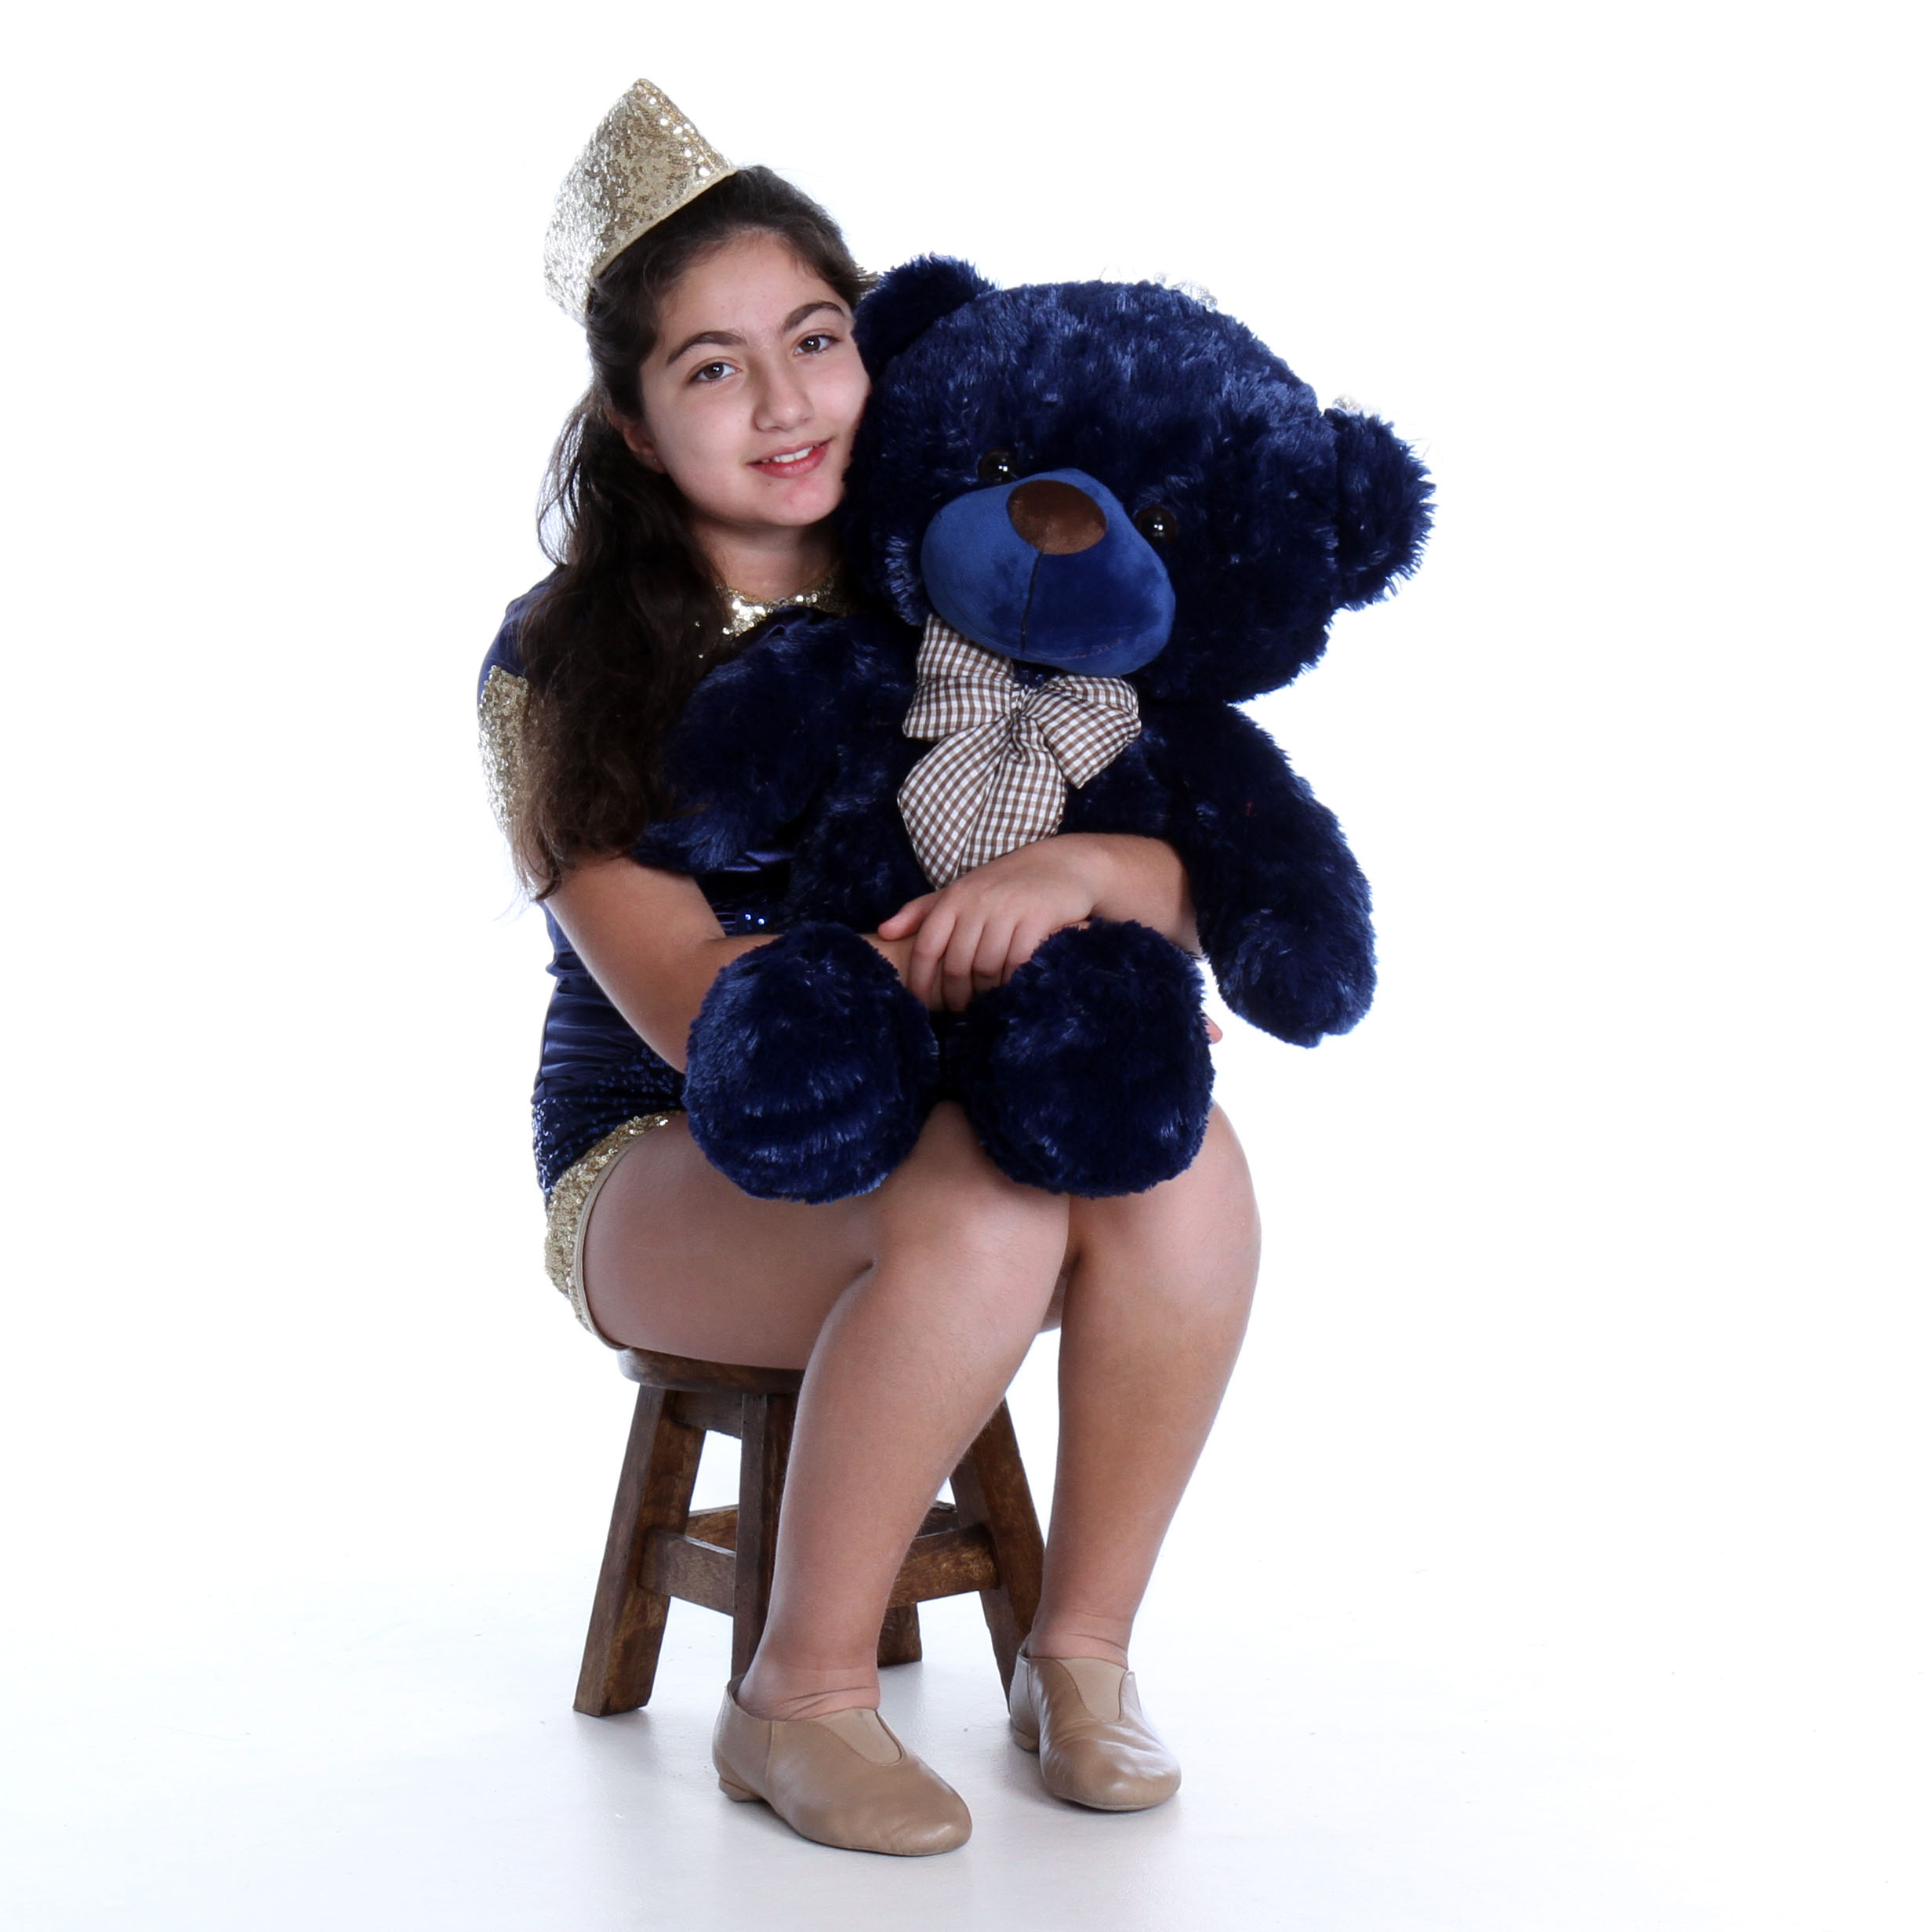 30in-huggable-navy-blue-teddy-bear-royce-cuddles.jpg